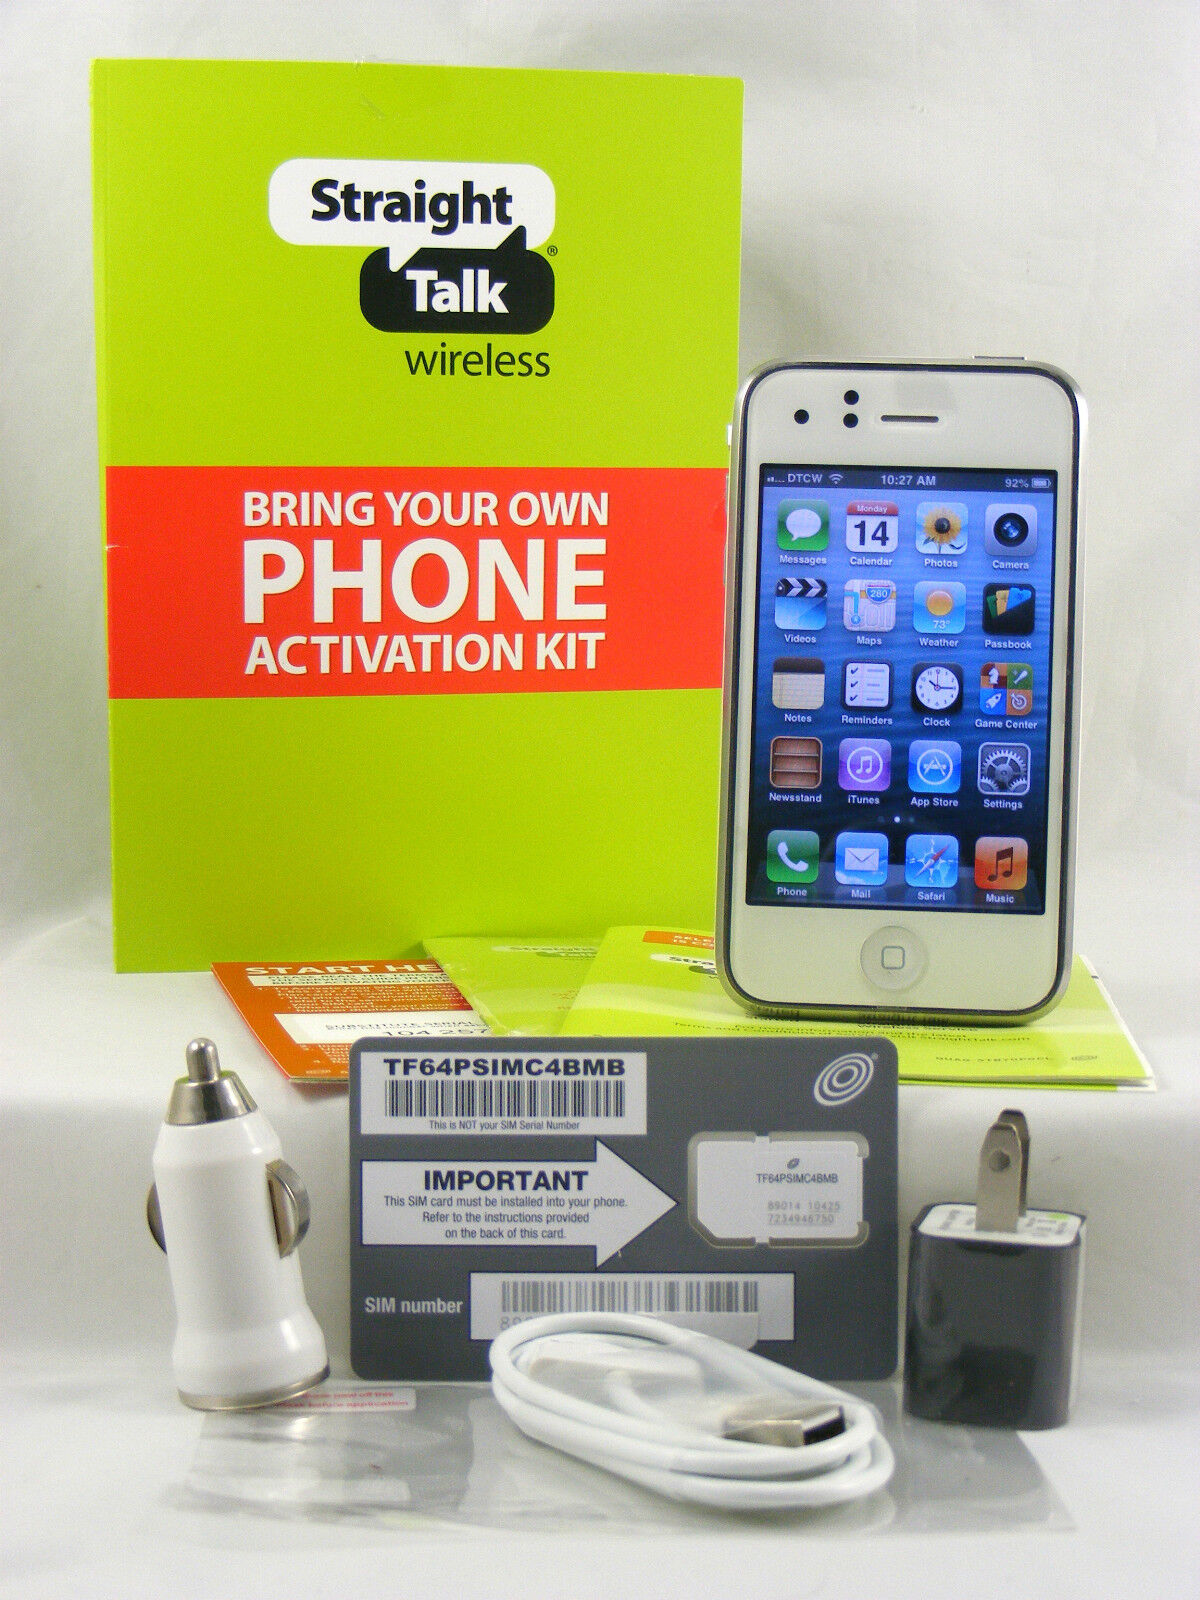 apple iphone 3g 8gb white (fac... Image 1